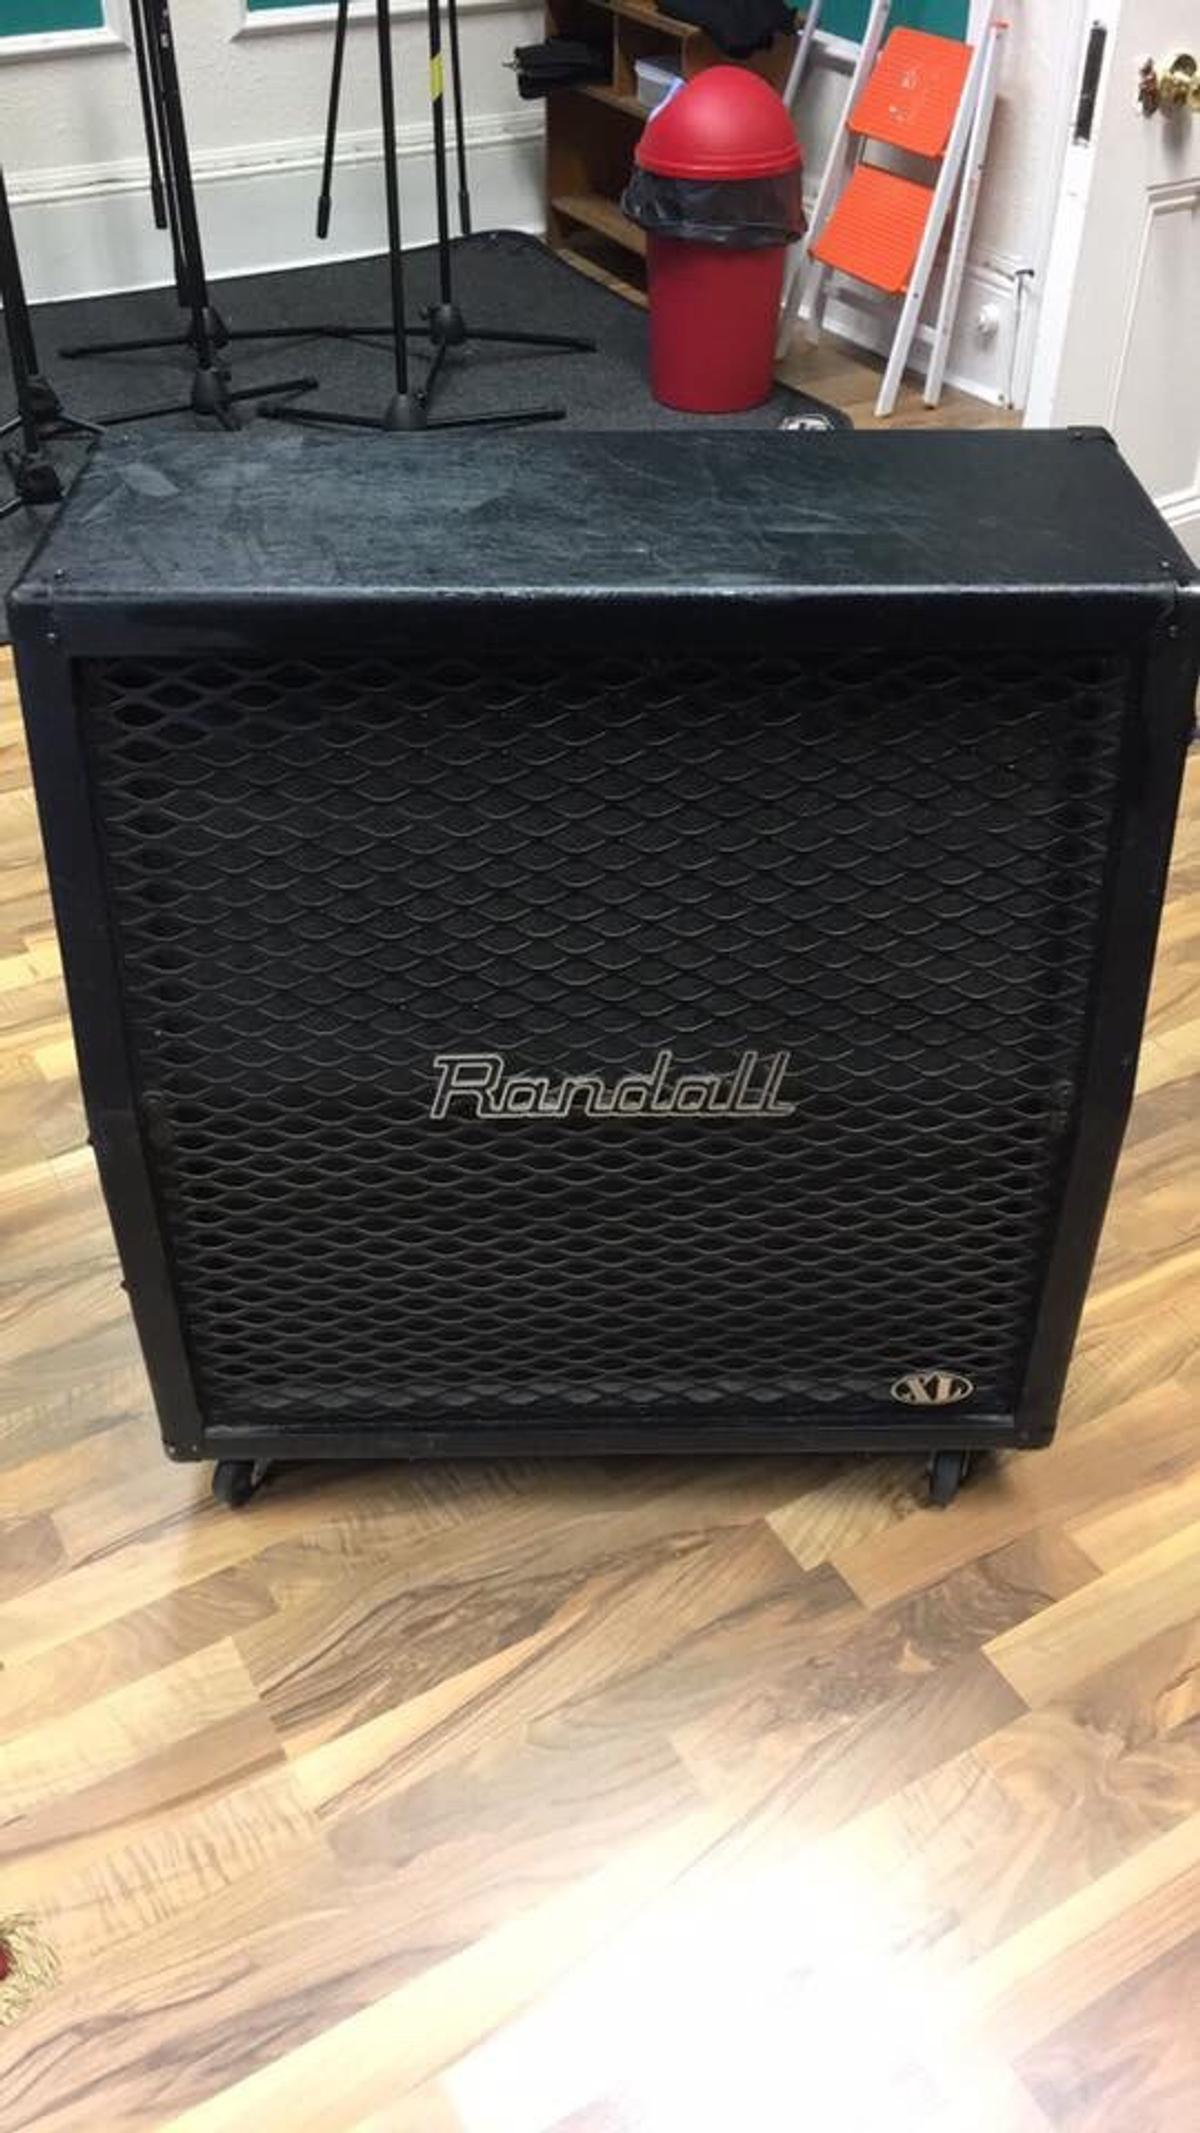 Randall XL 4x12 Angled Cab in ST17 Stafford for £200 00 for sale